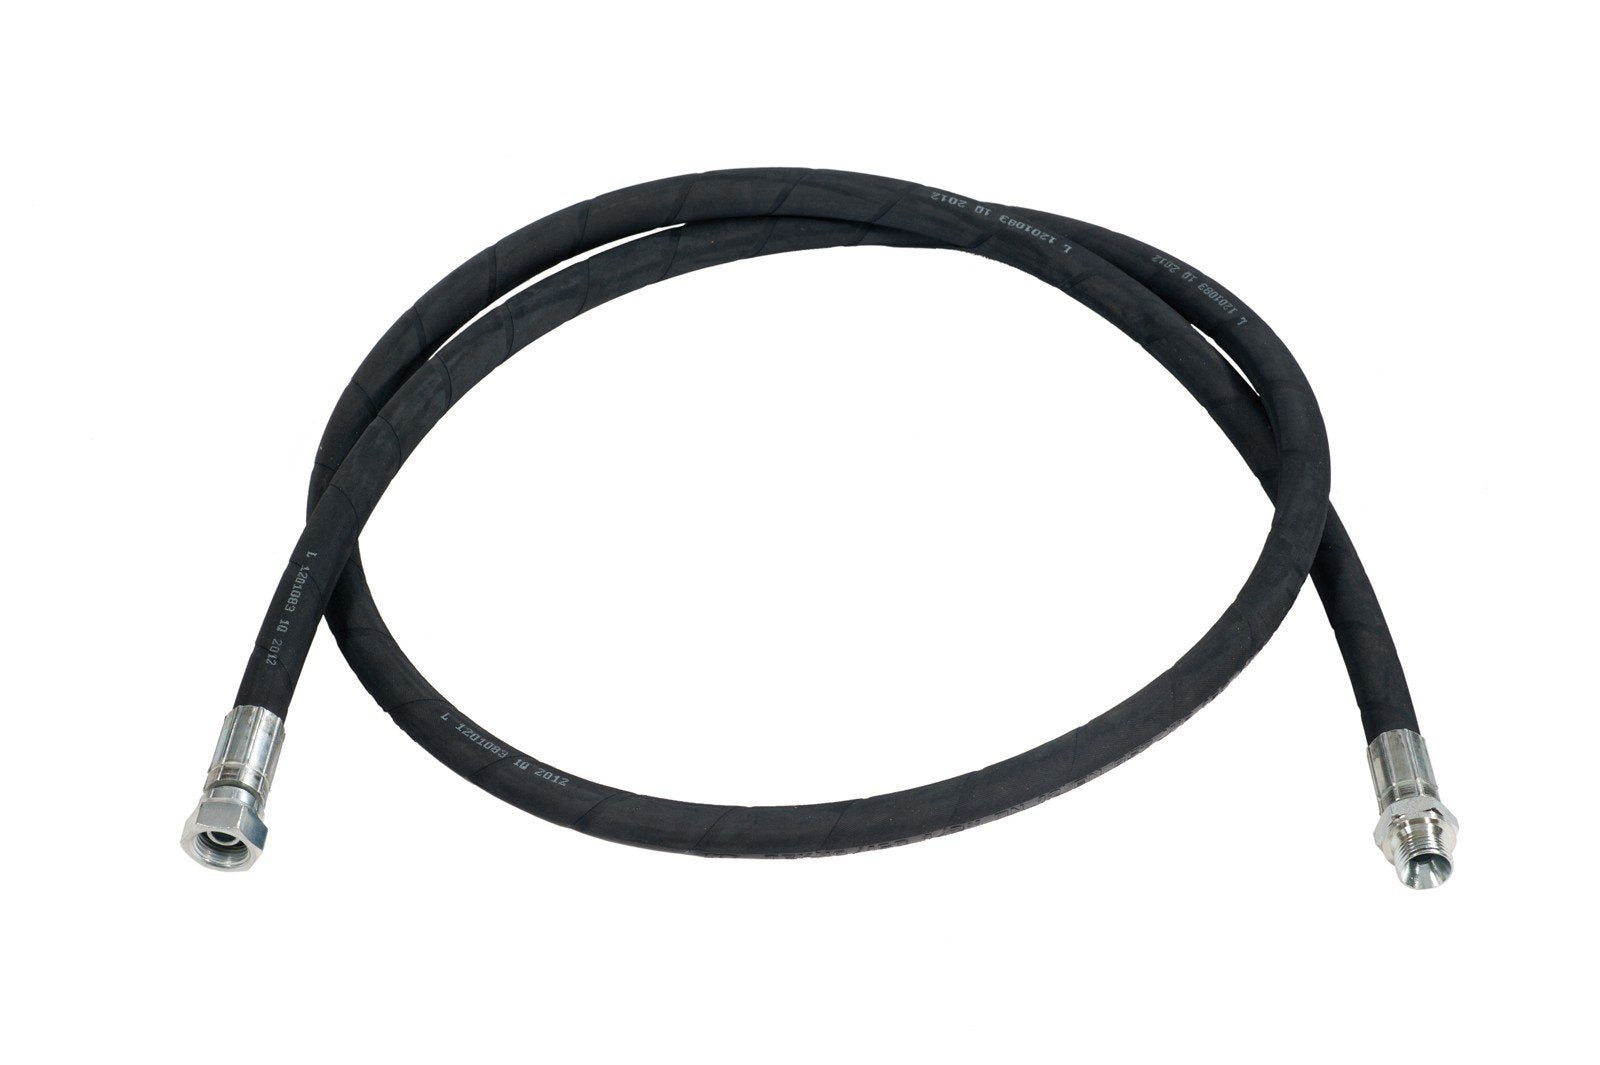 906-0404-030 - hoses for hose reels for oil and similar 160 bar